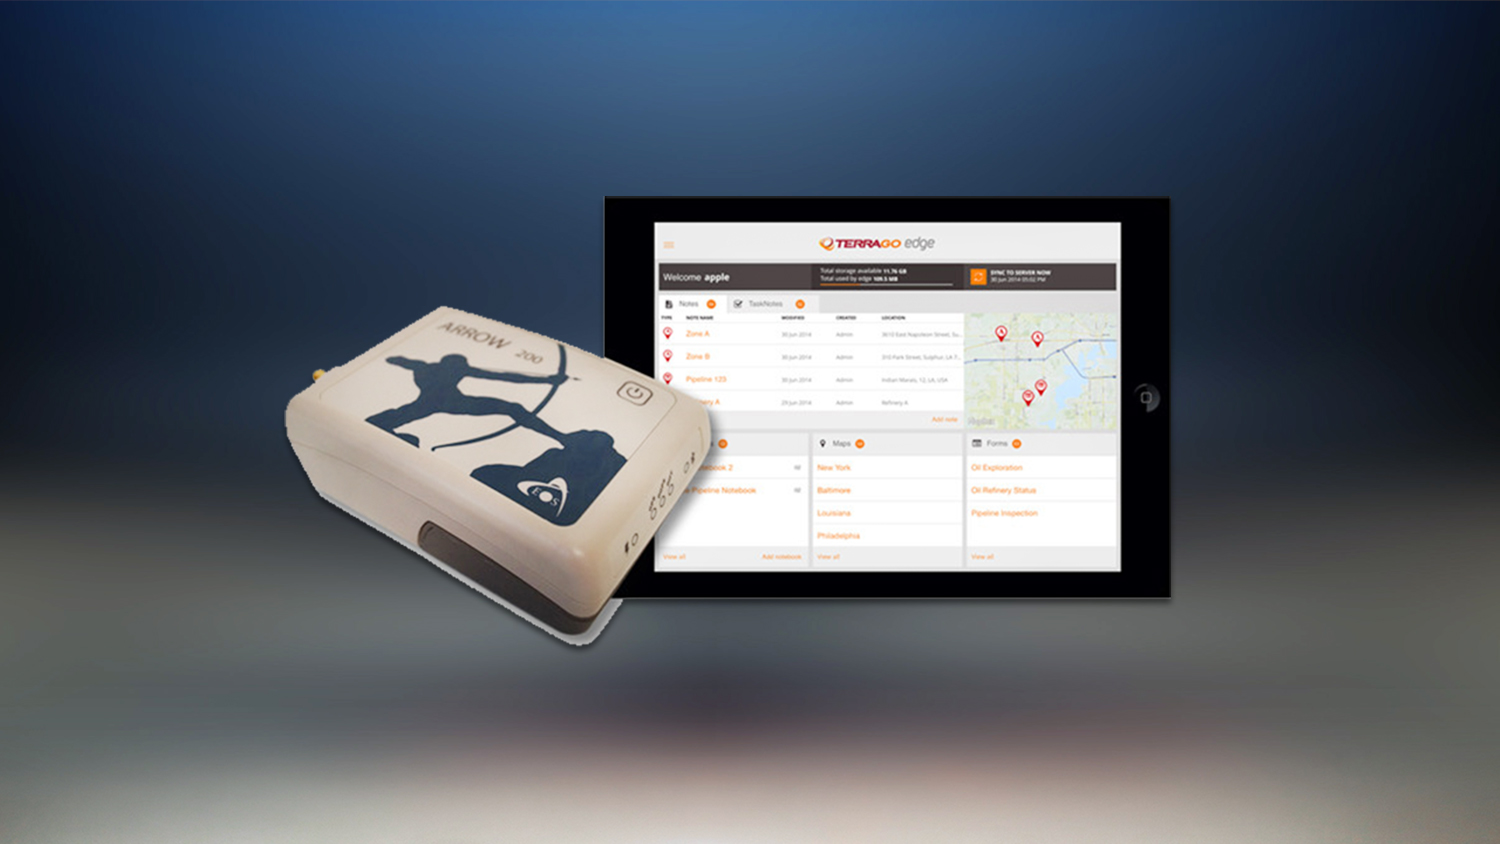 TerraGo Edge Eos Positioning Systems announce partnership GNSS